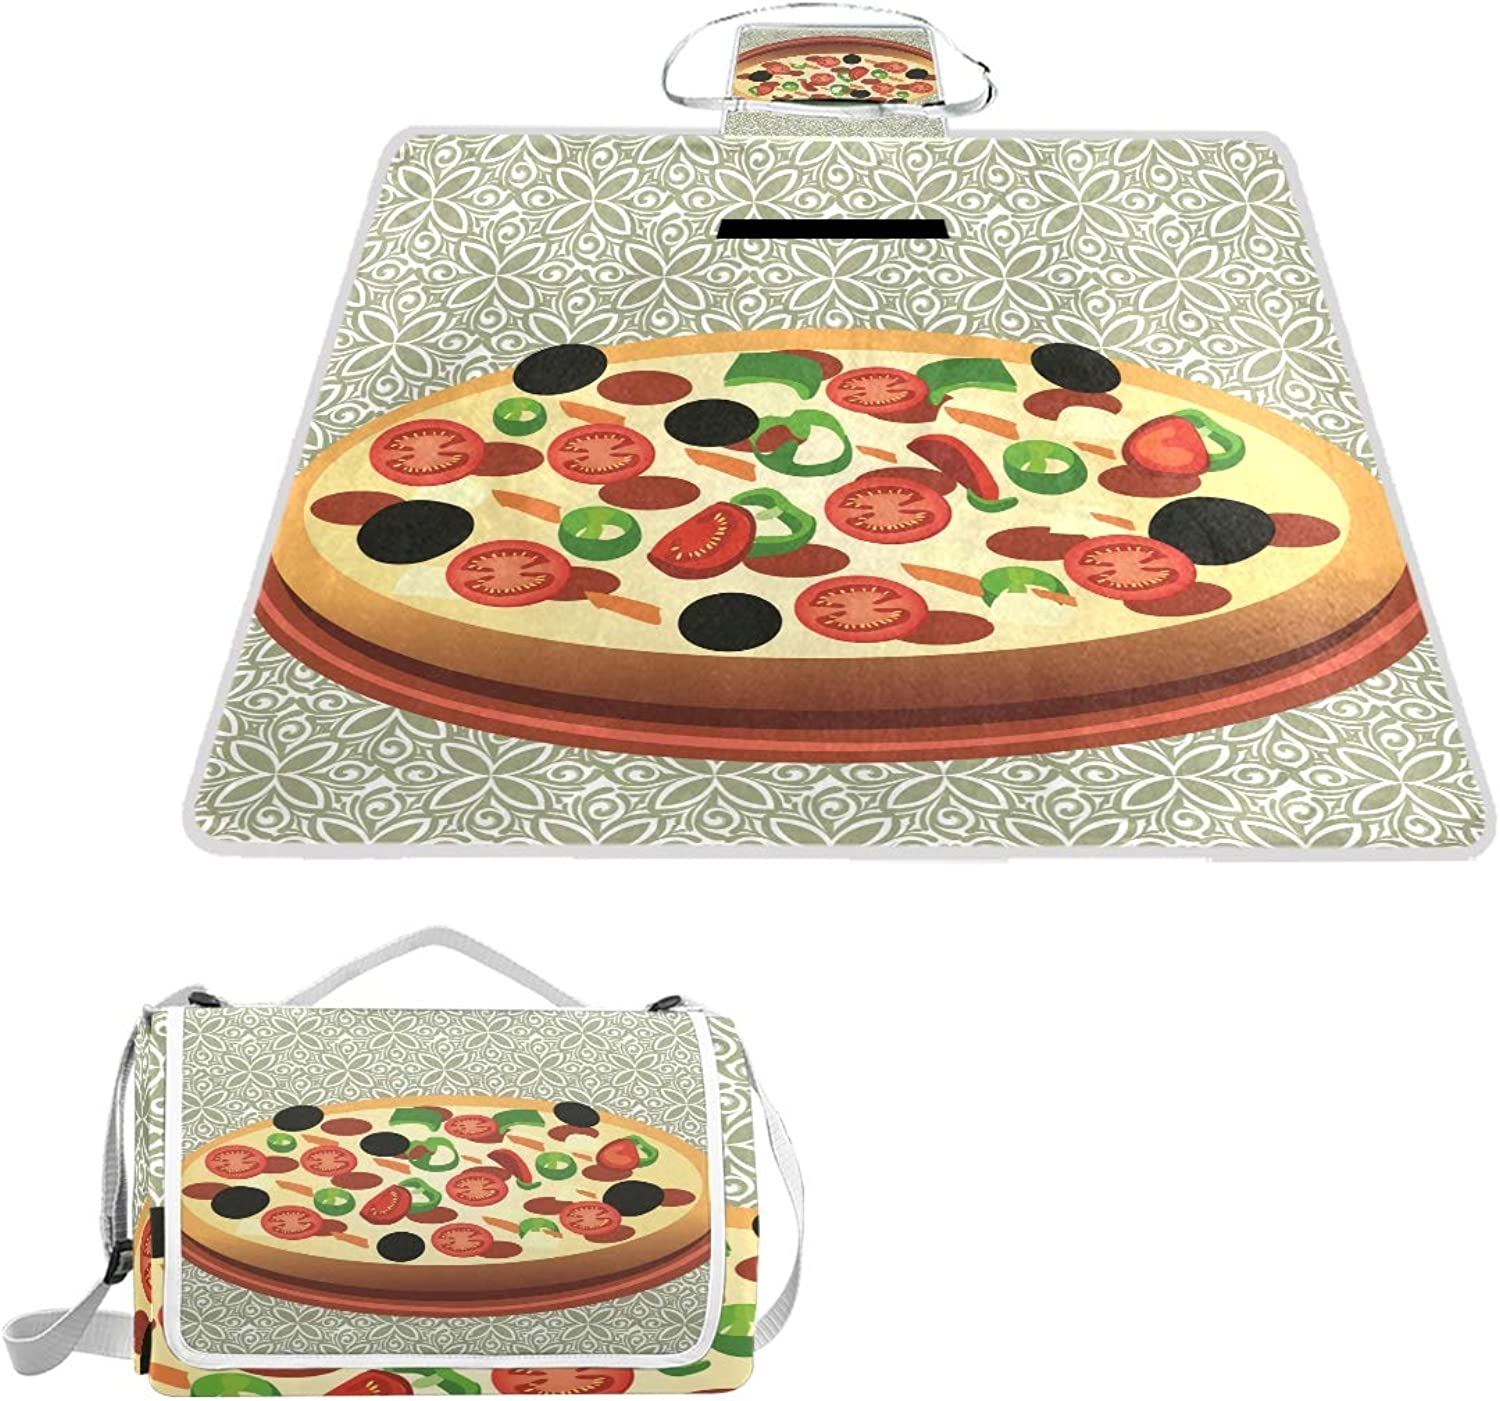 MASSIKOA Pizza Picnic Blanket Waterproof Outdoor Blanket Foldable Picnic Handy Mat Tote for Beach Camping Hiking